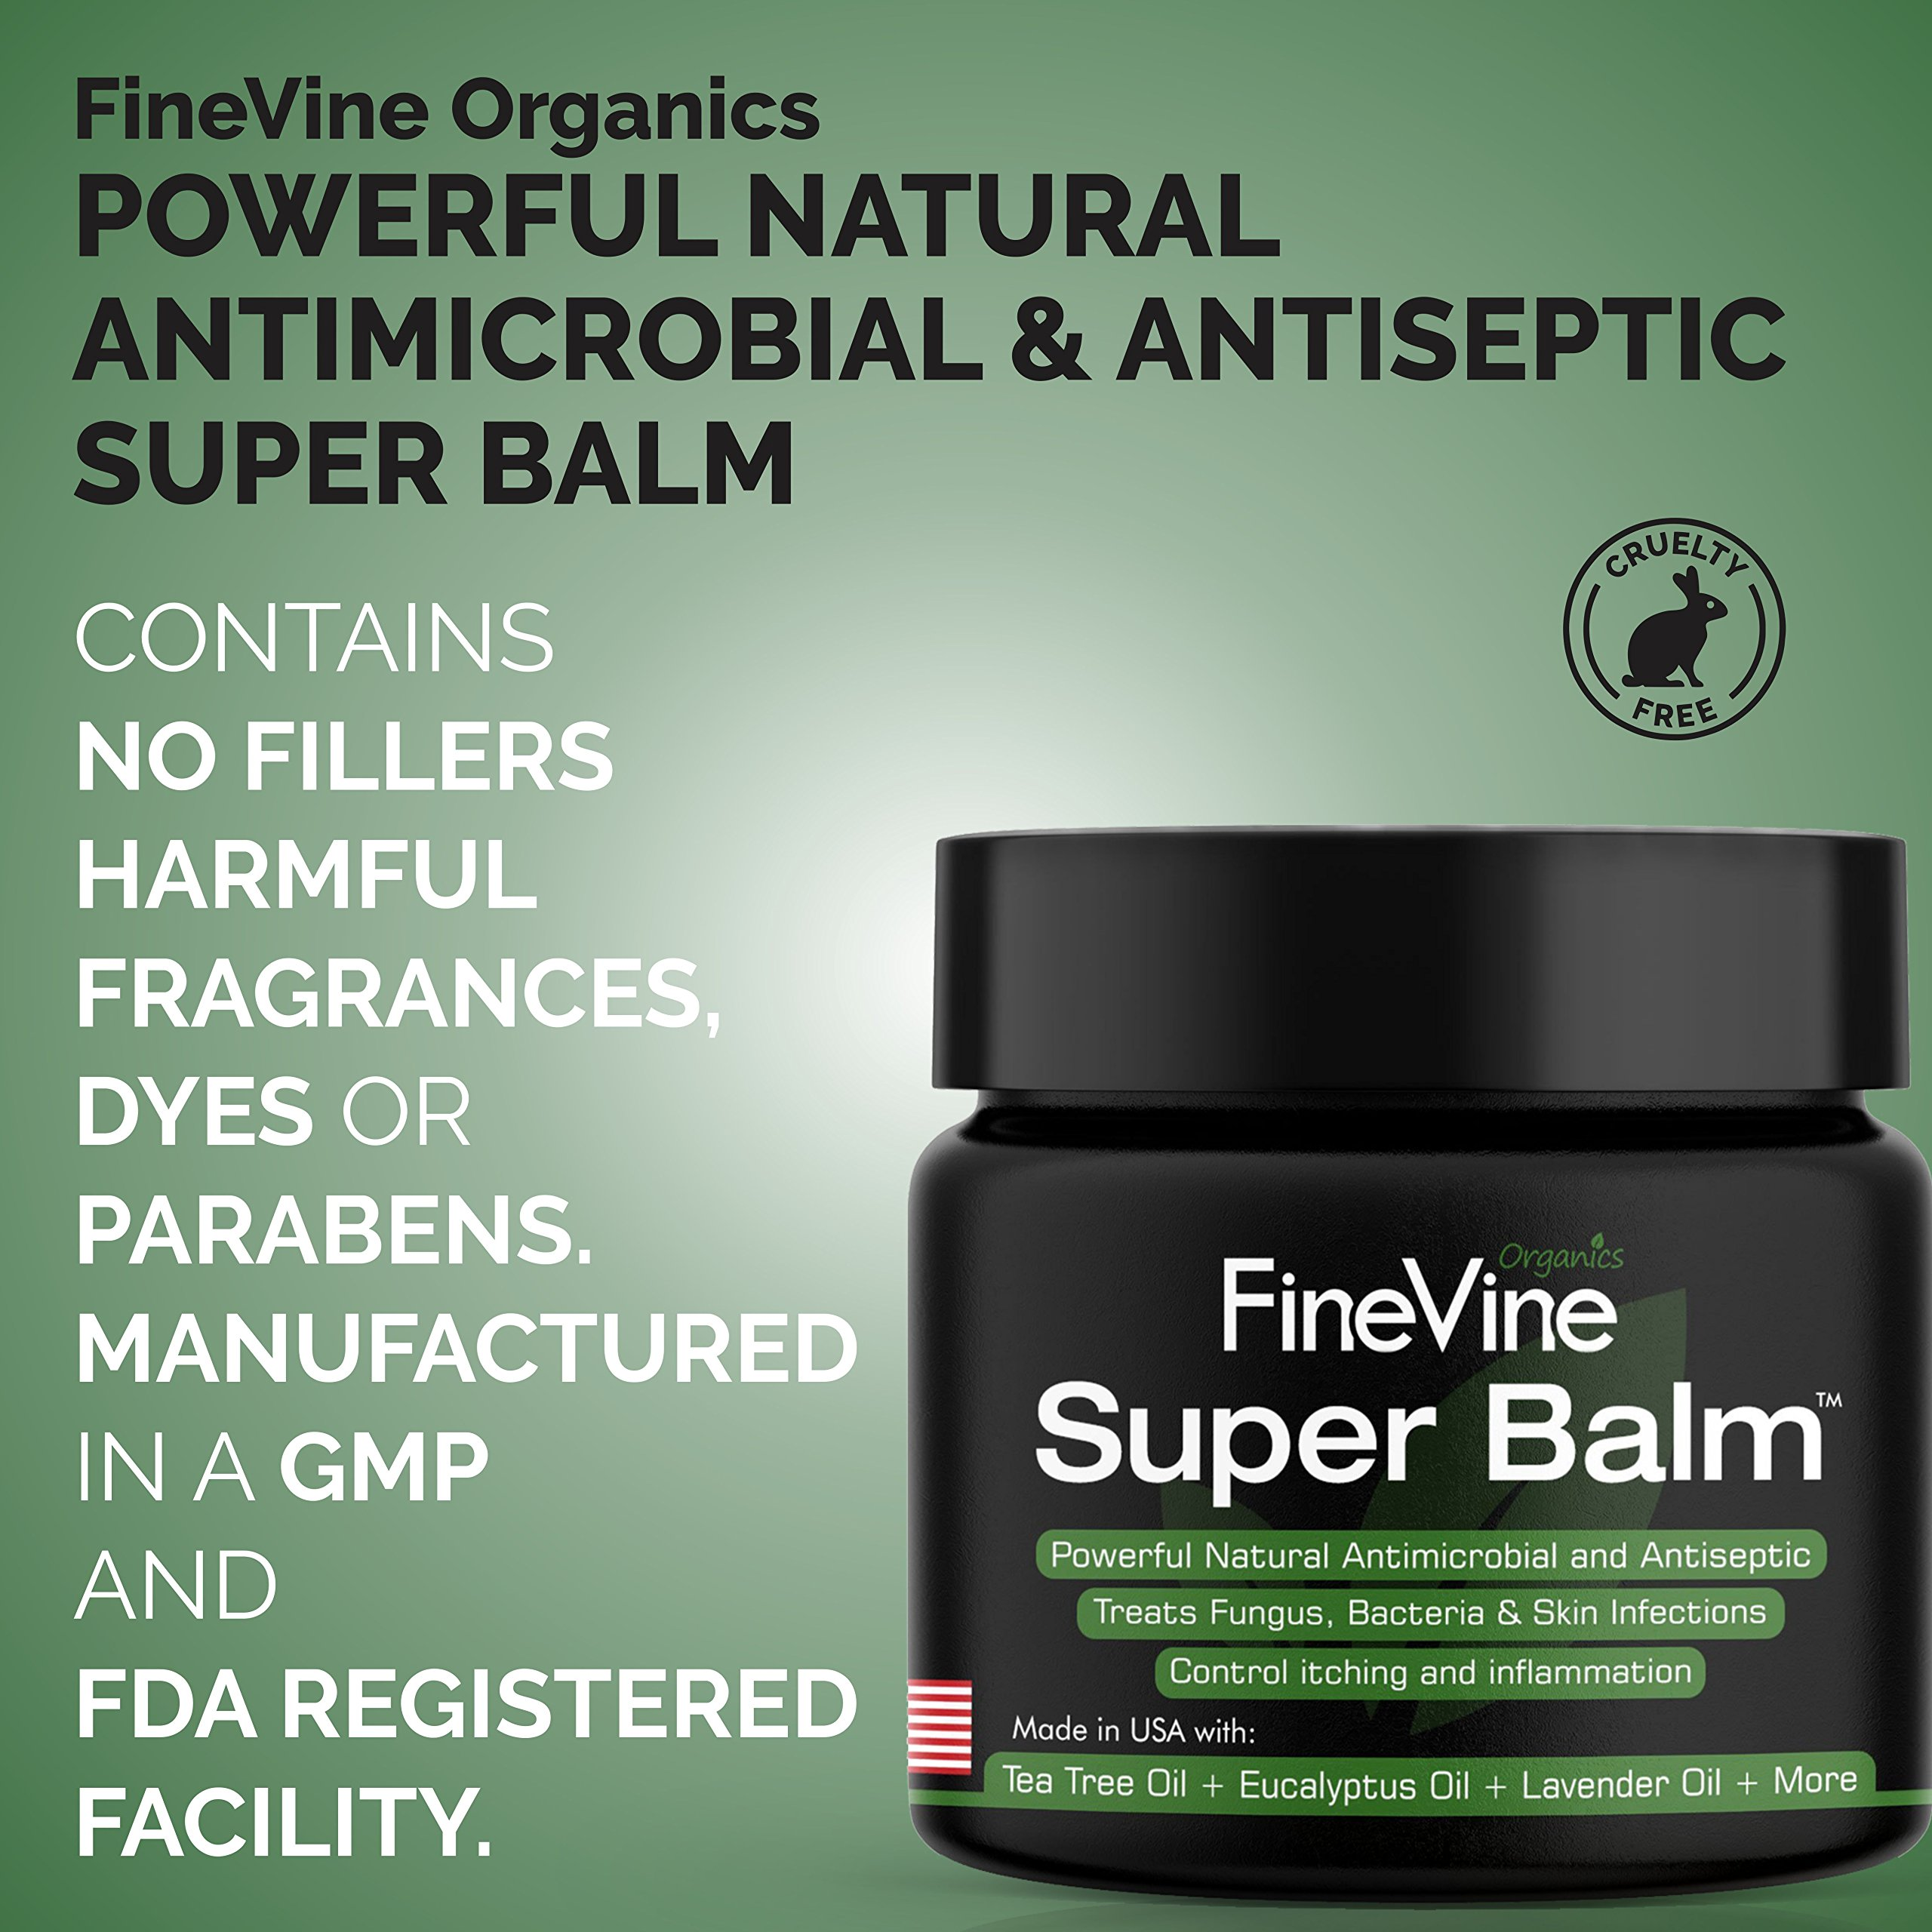 Antifungal Balm - Made in USA - Helps Treat Eczema, Ringworm, Jock Itch, Athletes Foot and Nail Fungal Infections - Best Natural Ointment to Soothes Itchy, Scaly or Cracked Skin. by FineVine (Image #7)